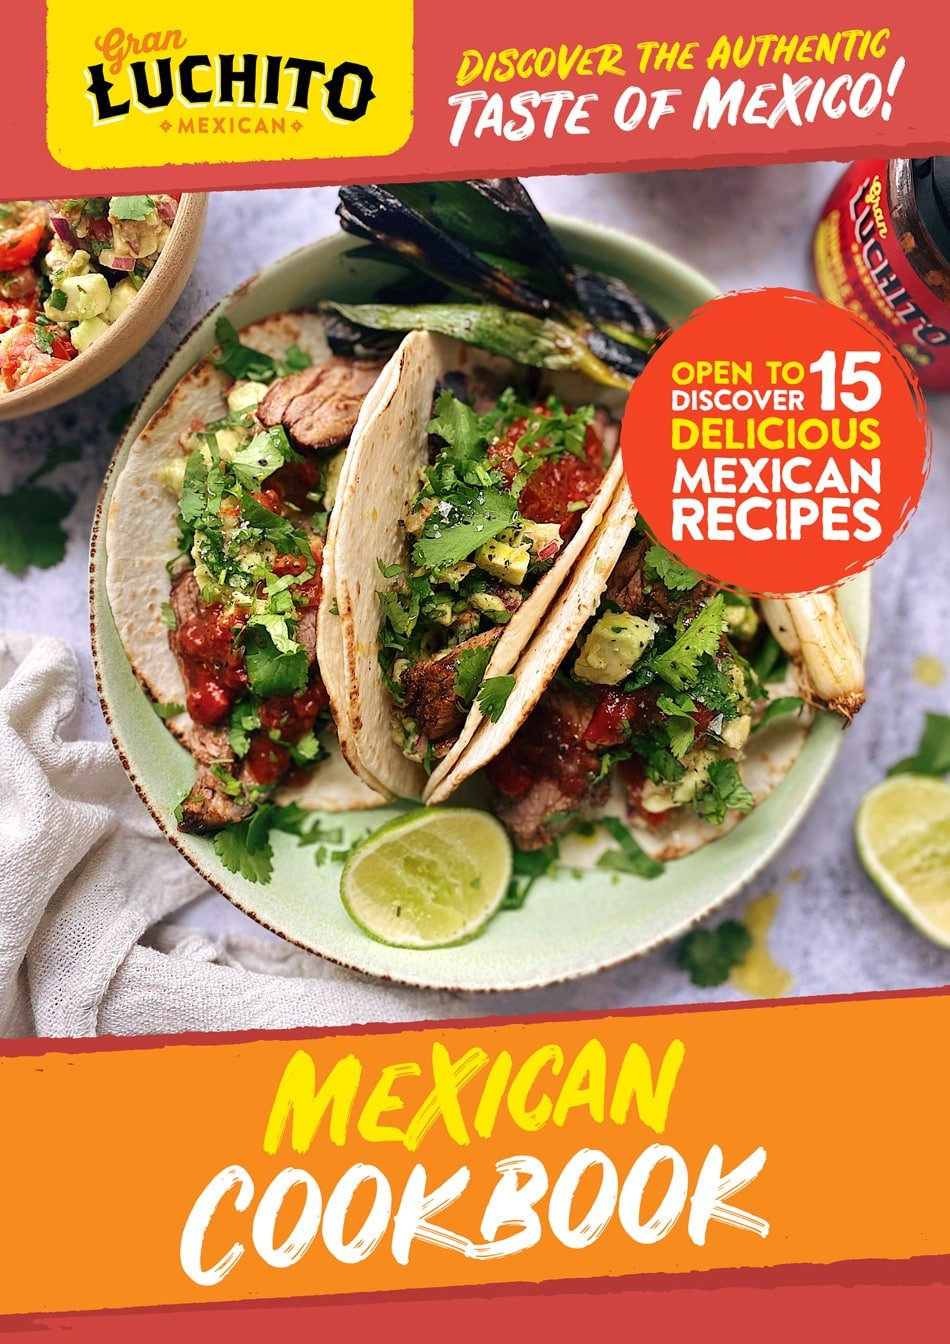 Sign up for our Free Mexican Cookbook